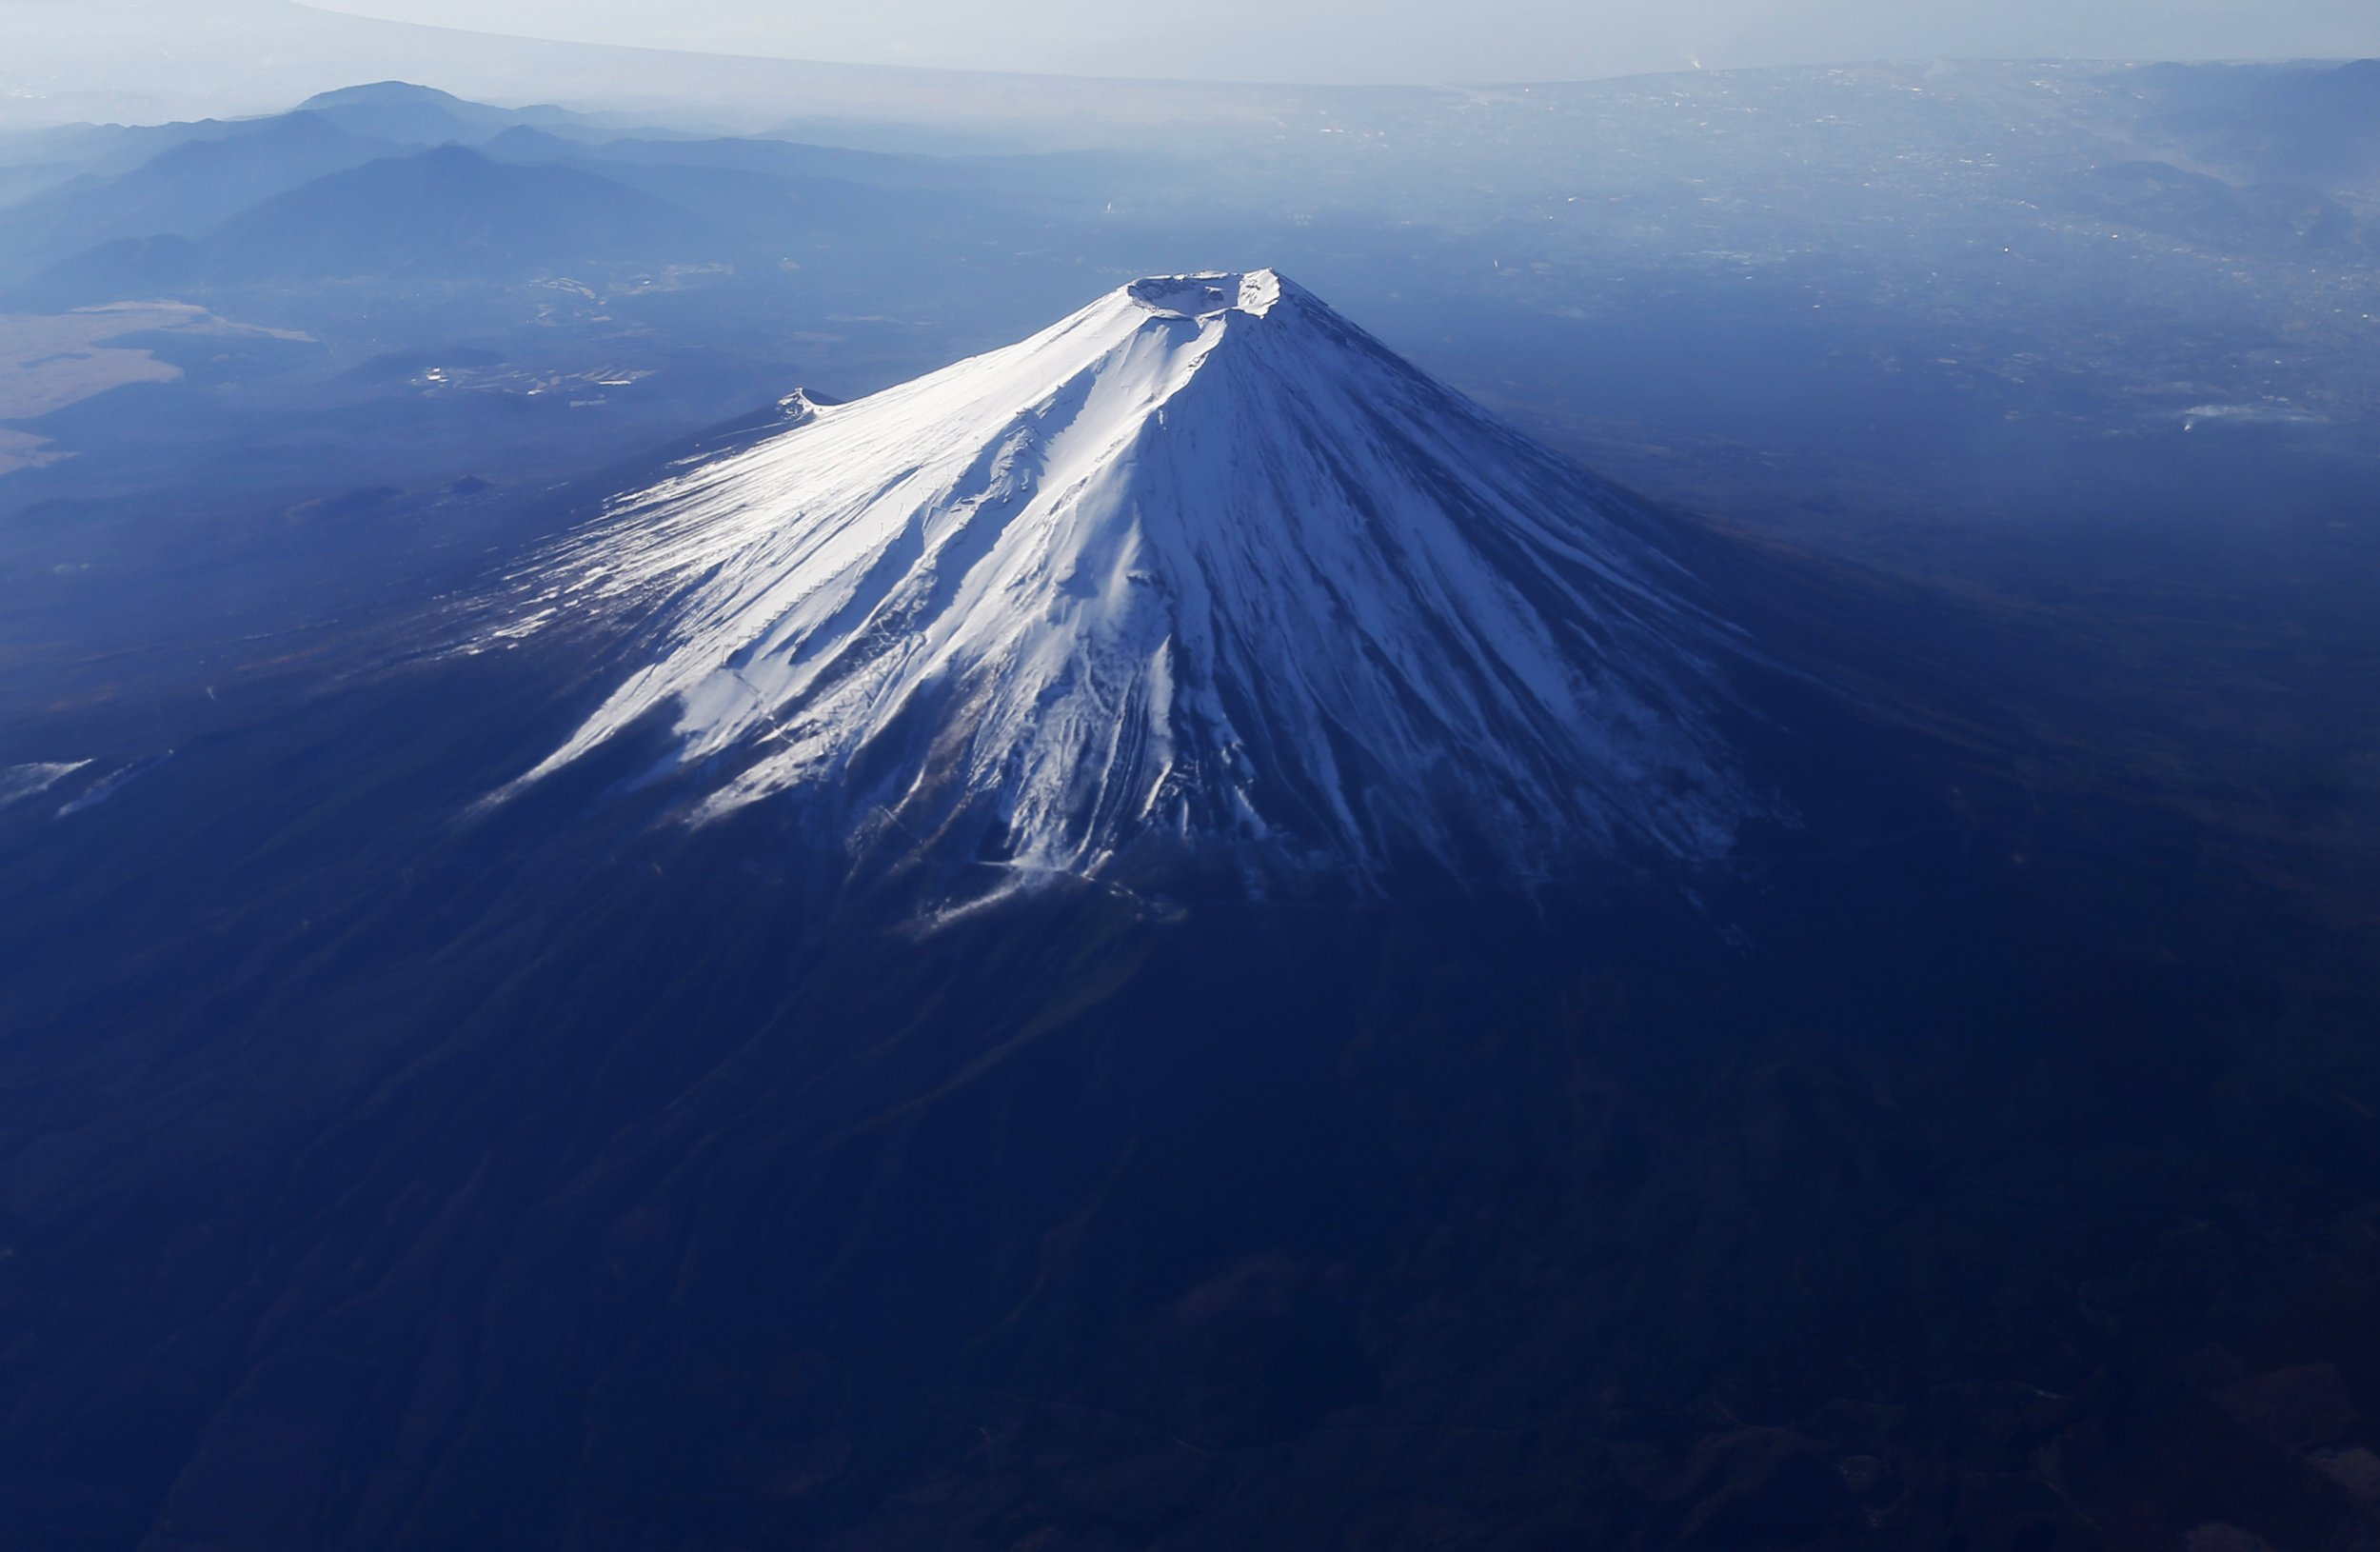 Mount Fuji, covered with snow.